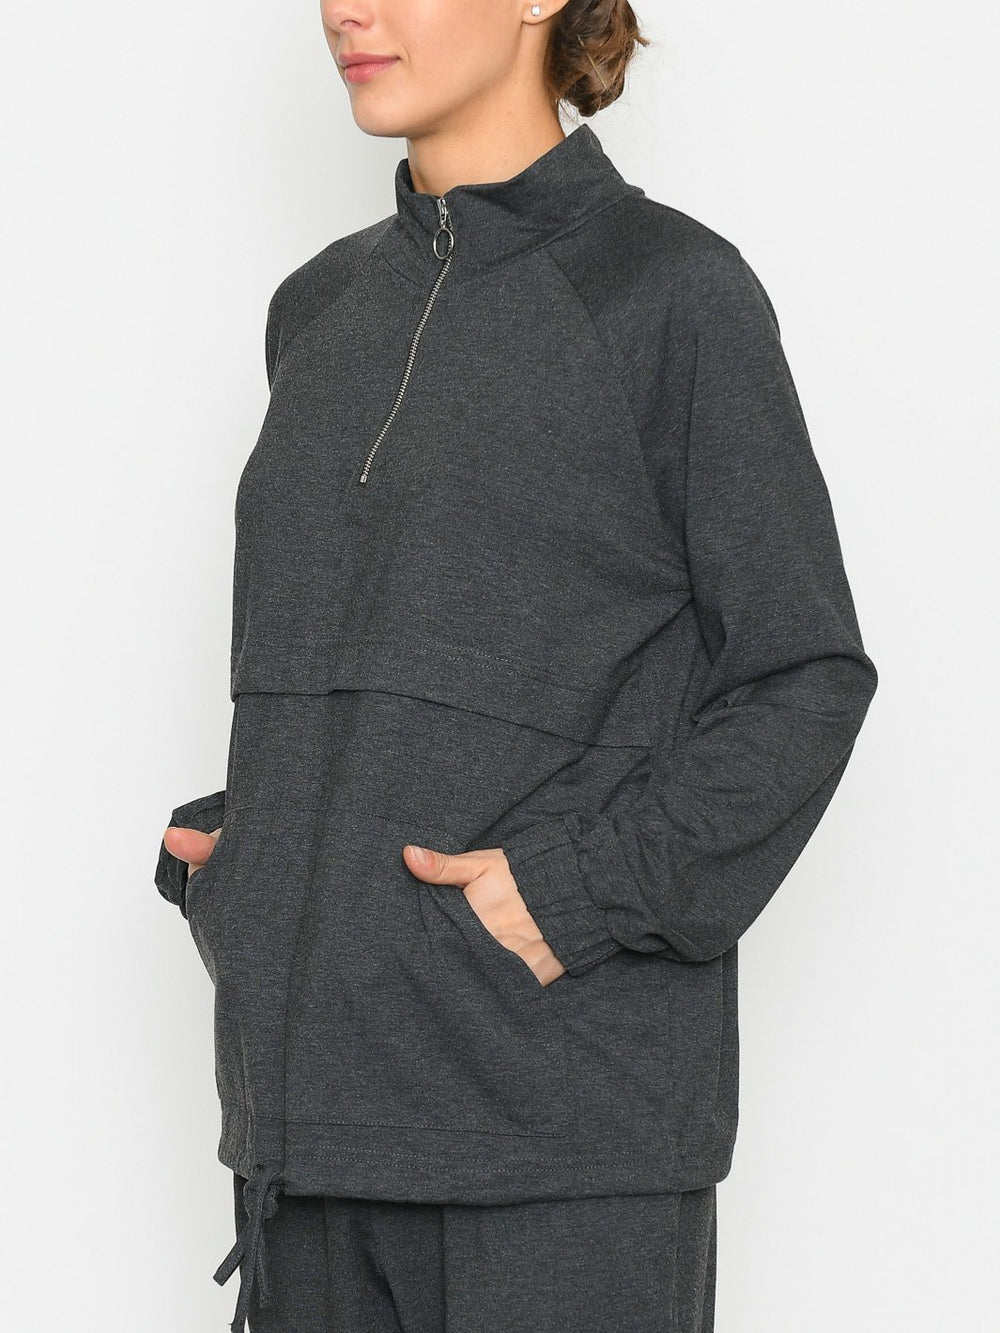 Kaffe KAsiggi sweat pullover dark grey melange - Online-Mode